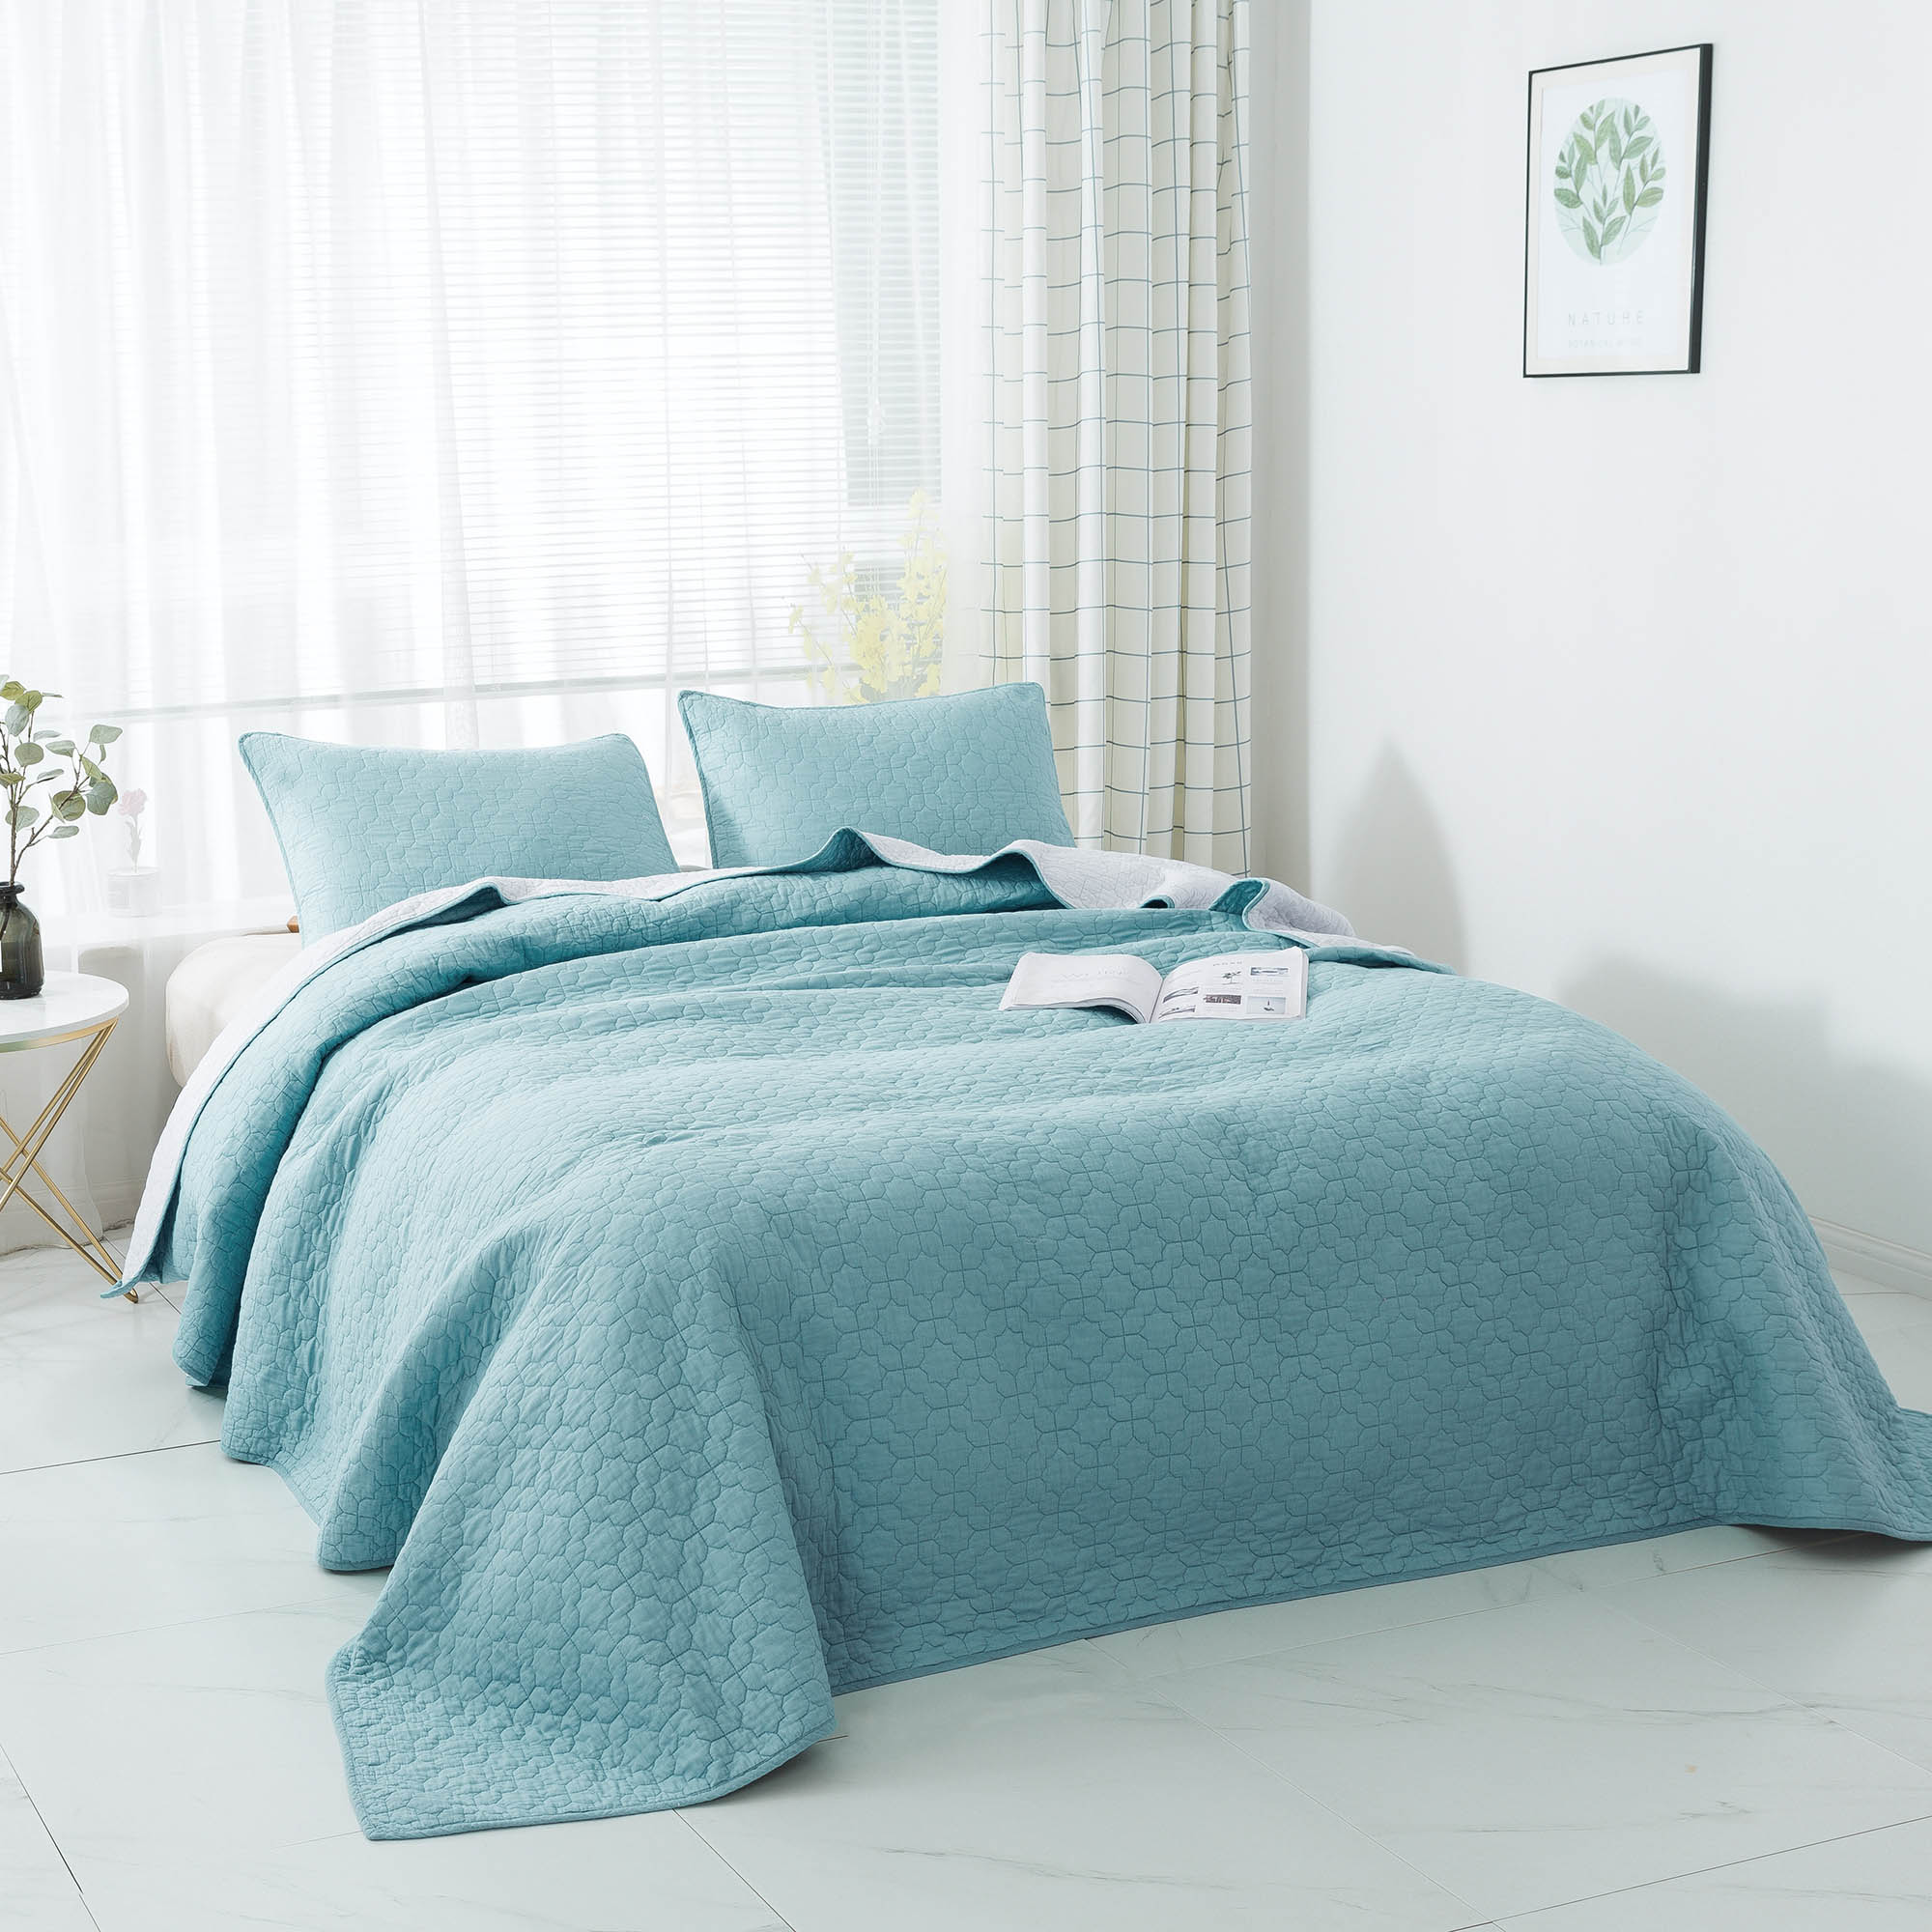 Kasentex Coastal Design Luxury Soft 100% Cotton Bedspread with Pillow Shams - Kasentex